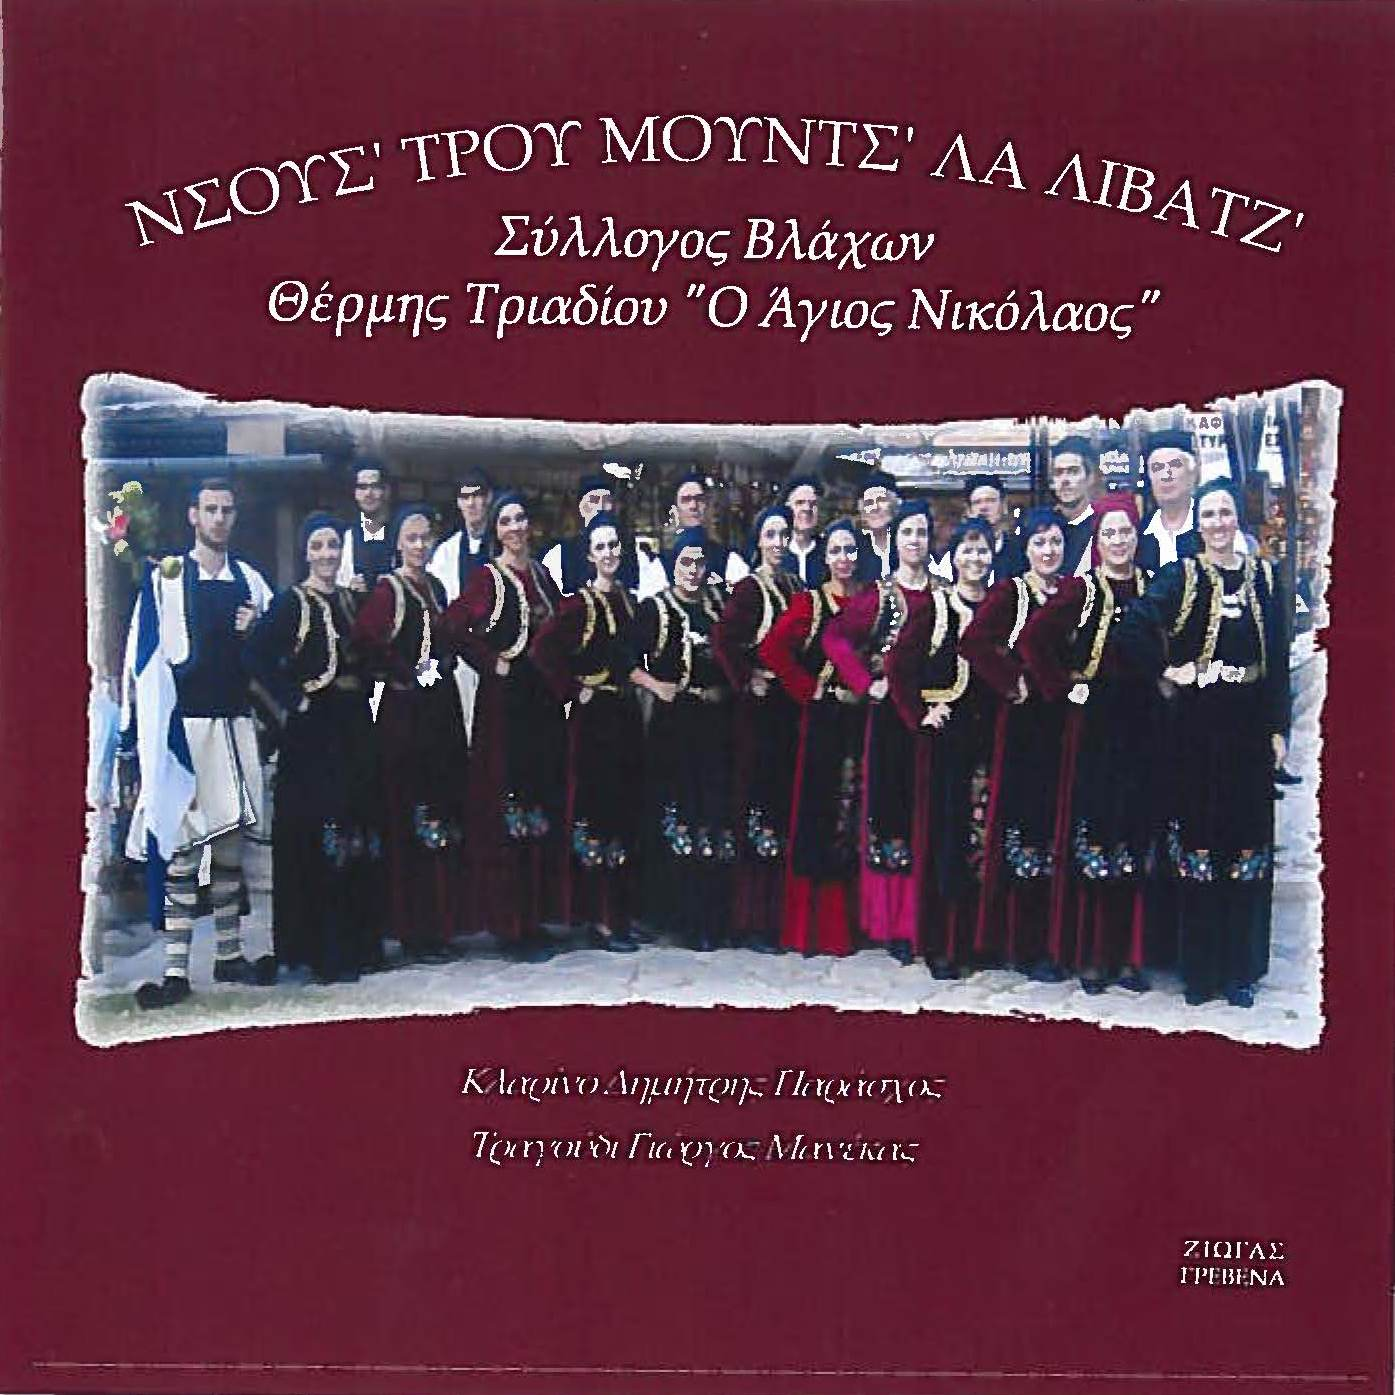 NSOUS TROU MOUNTS LA LIVATZ - ASSOCIATION OF THE VLACHS OF THERMI TRIADIOU O AGIOS NIKOLAOS